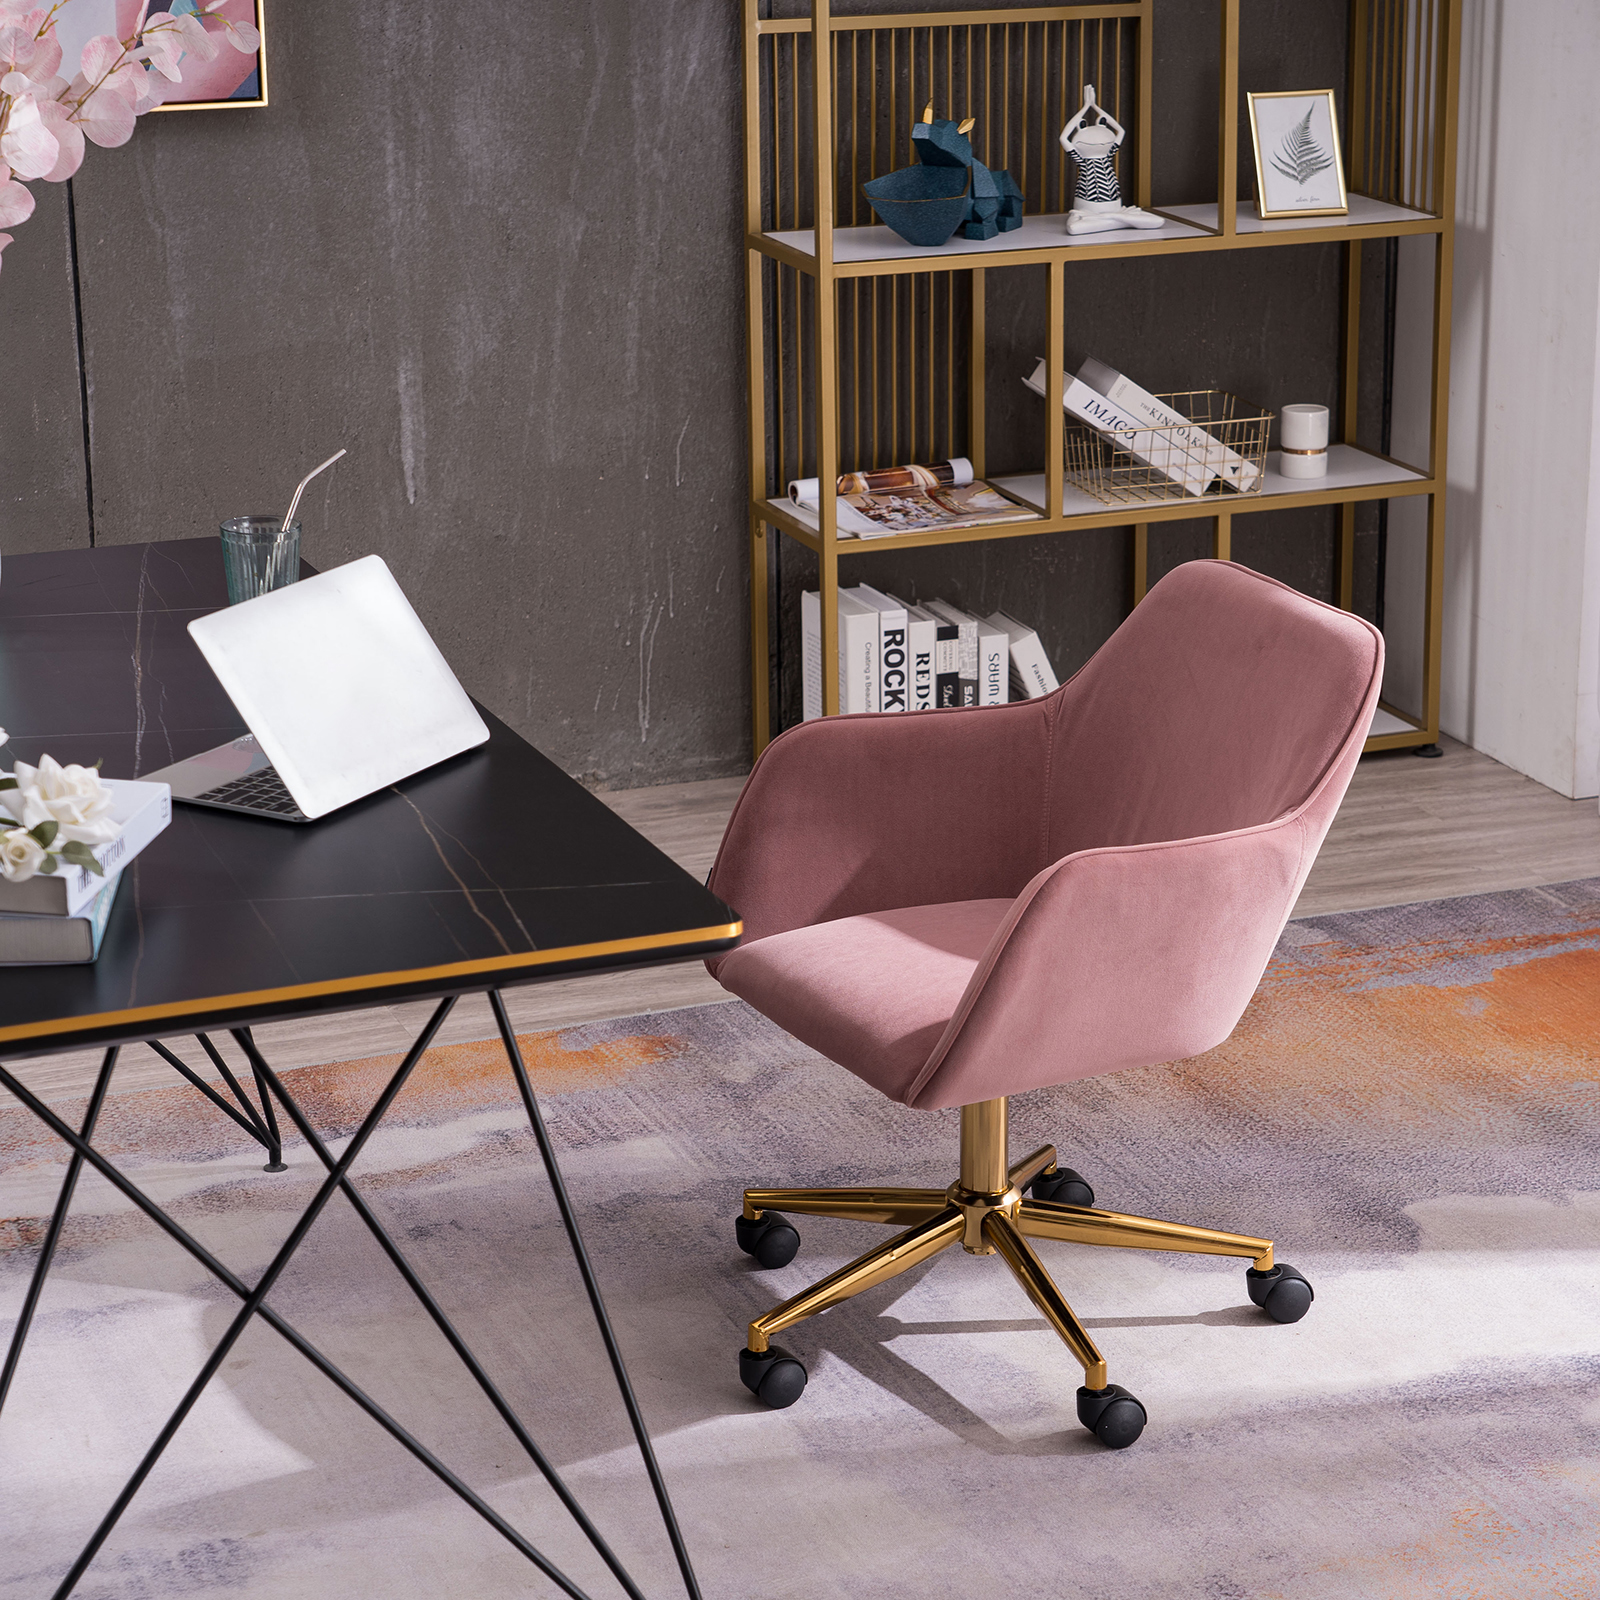 [US Direct] Modern Velvet Light Coffee Material Adjustable Height 360 revolving Home Office Chair with Gold Metal Legs and Universal Wheel for Indoor